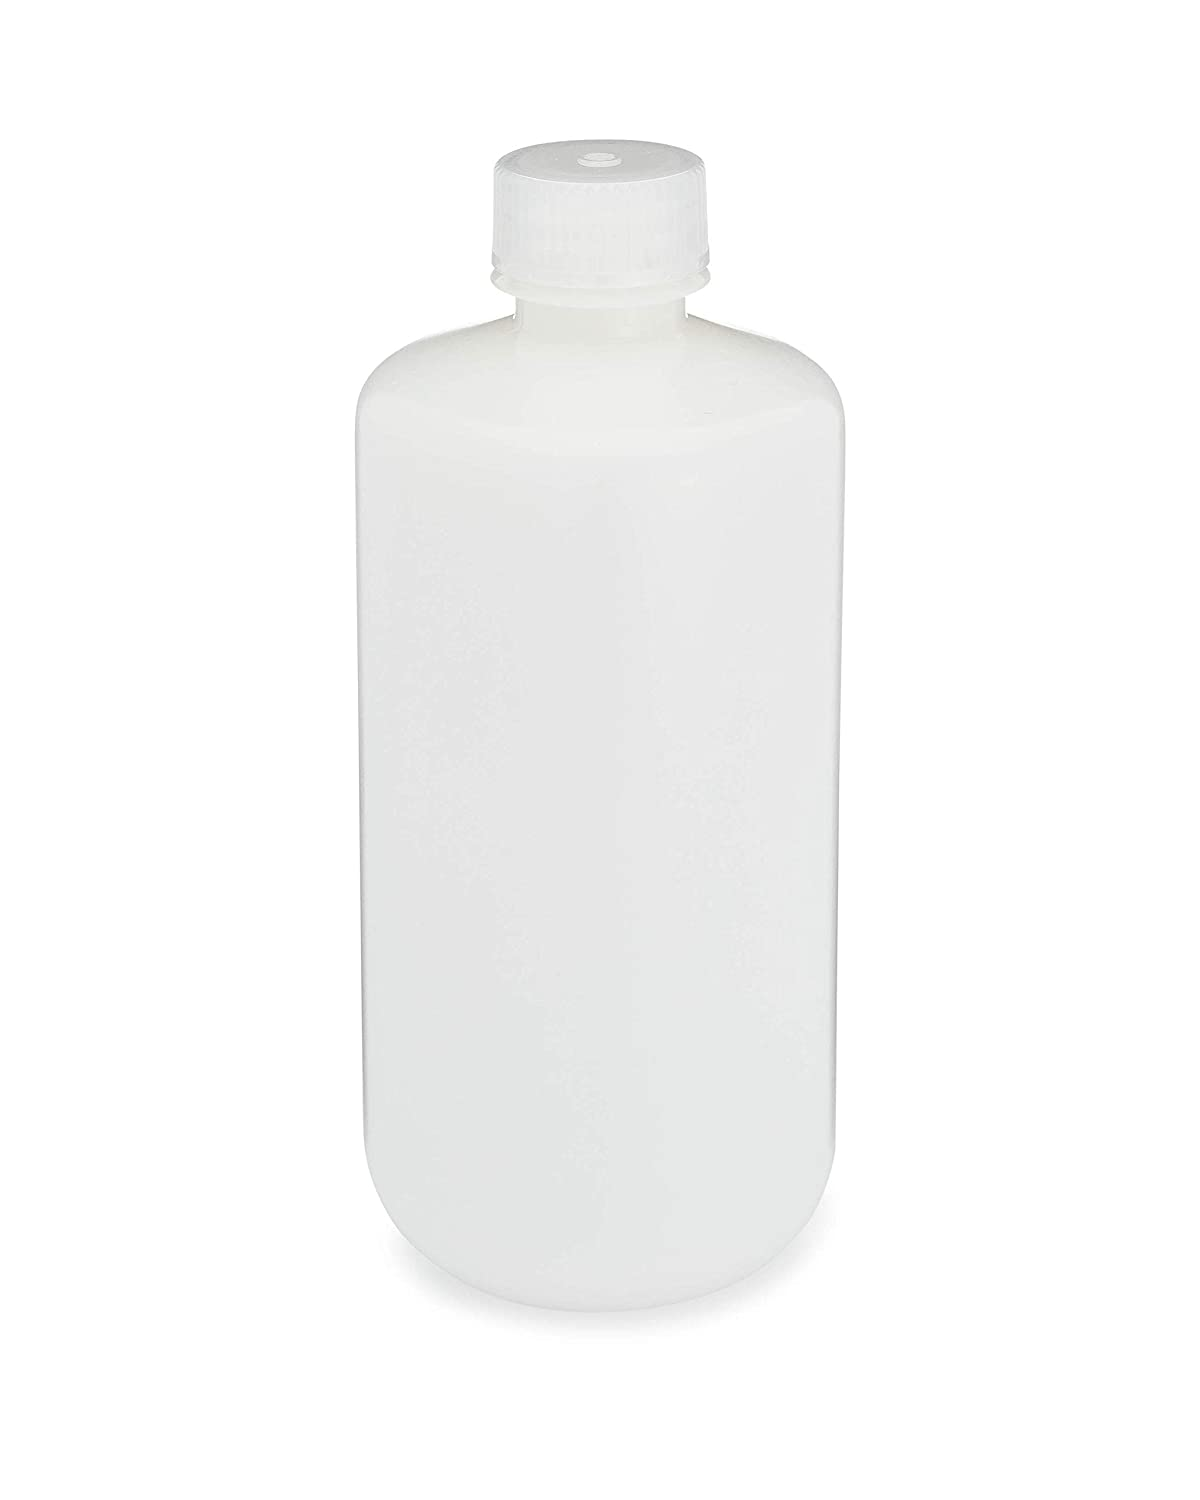 12//Pack labForce 1155L38 Bottle Narrow Mouth Boston Round HDPE with PP Closure 500mL